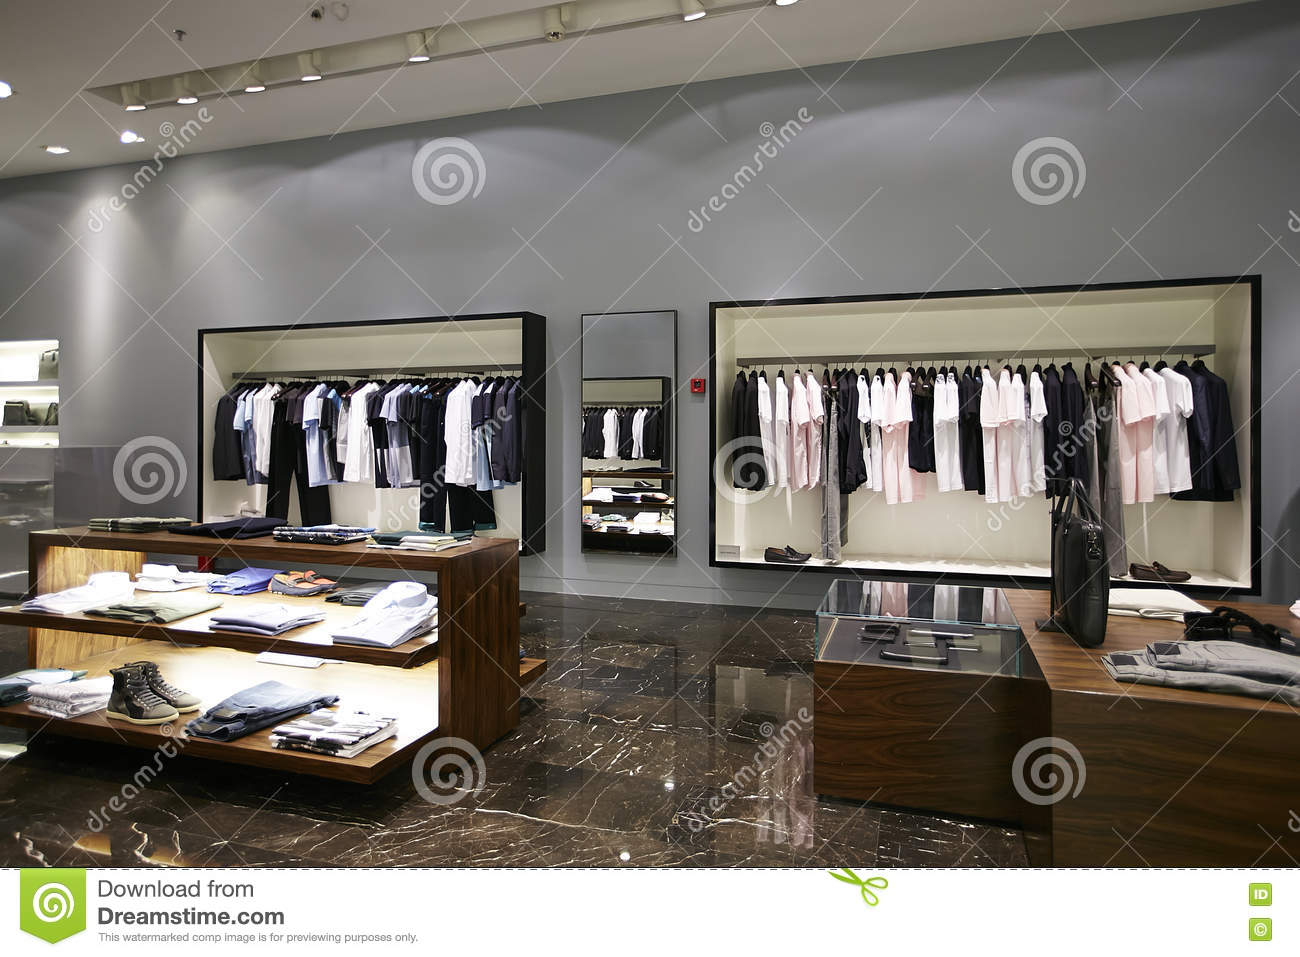 Model line clothing store